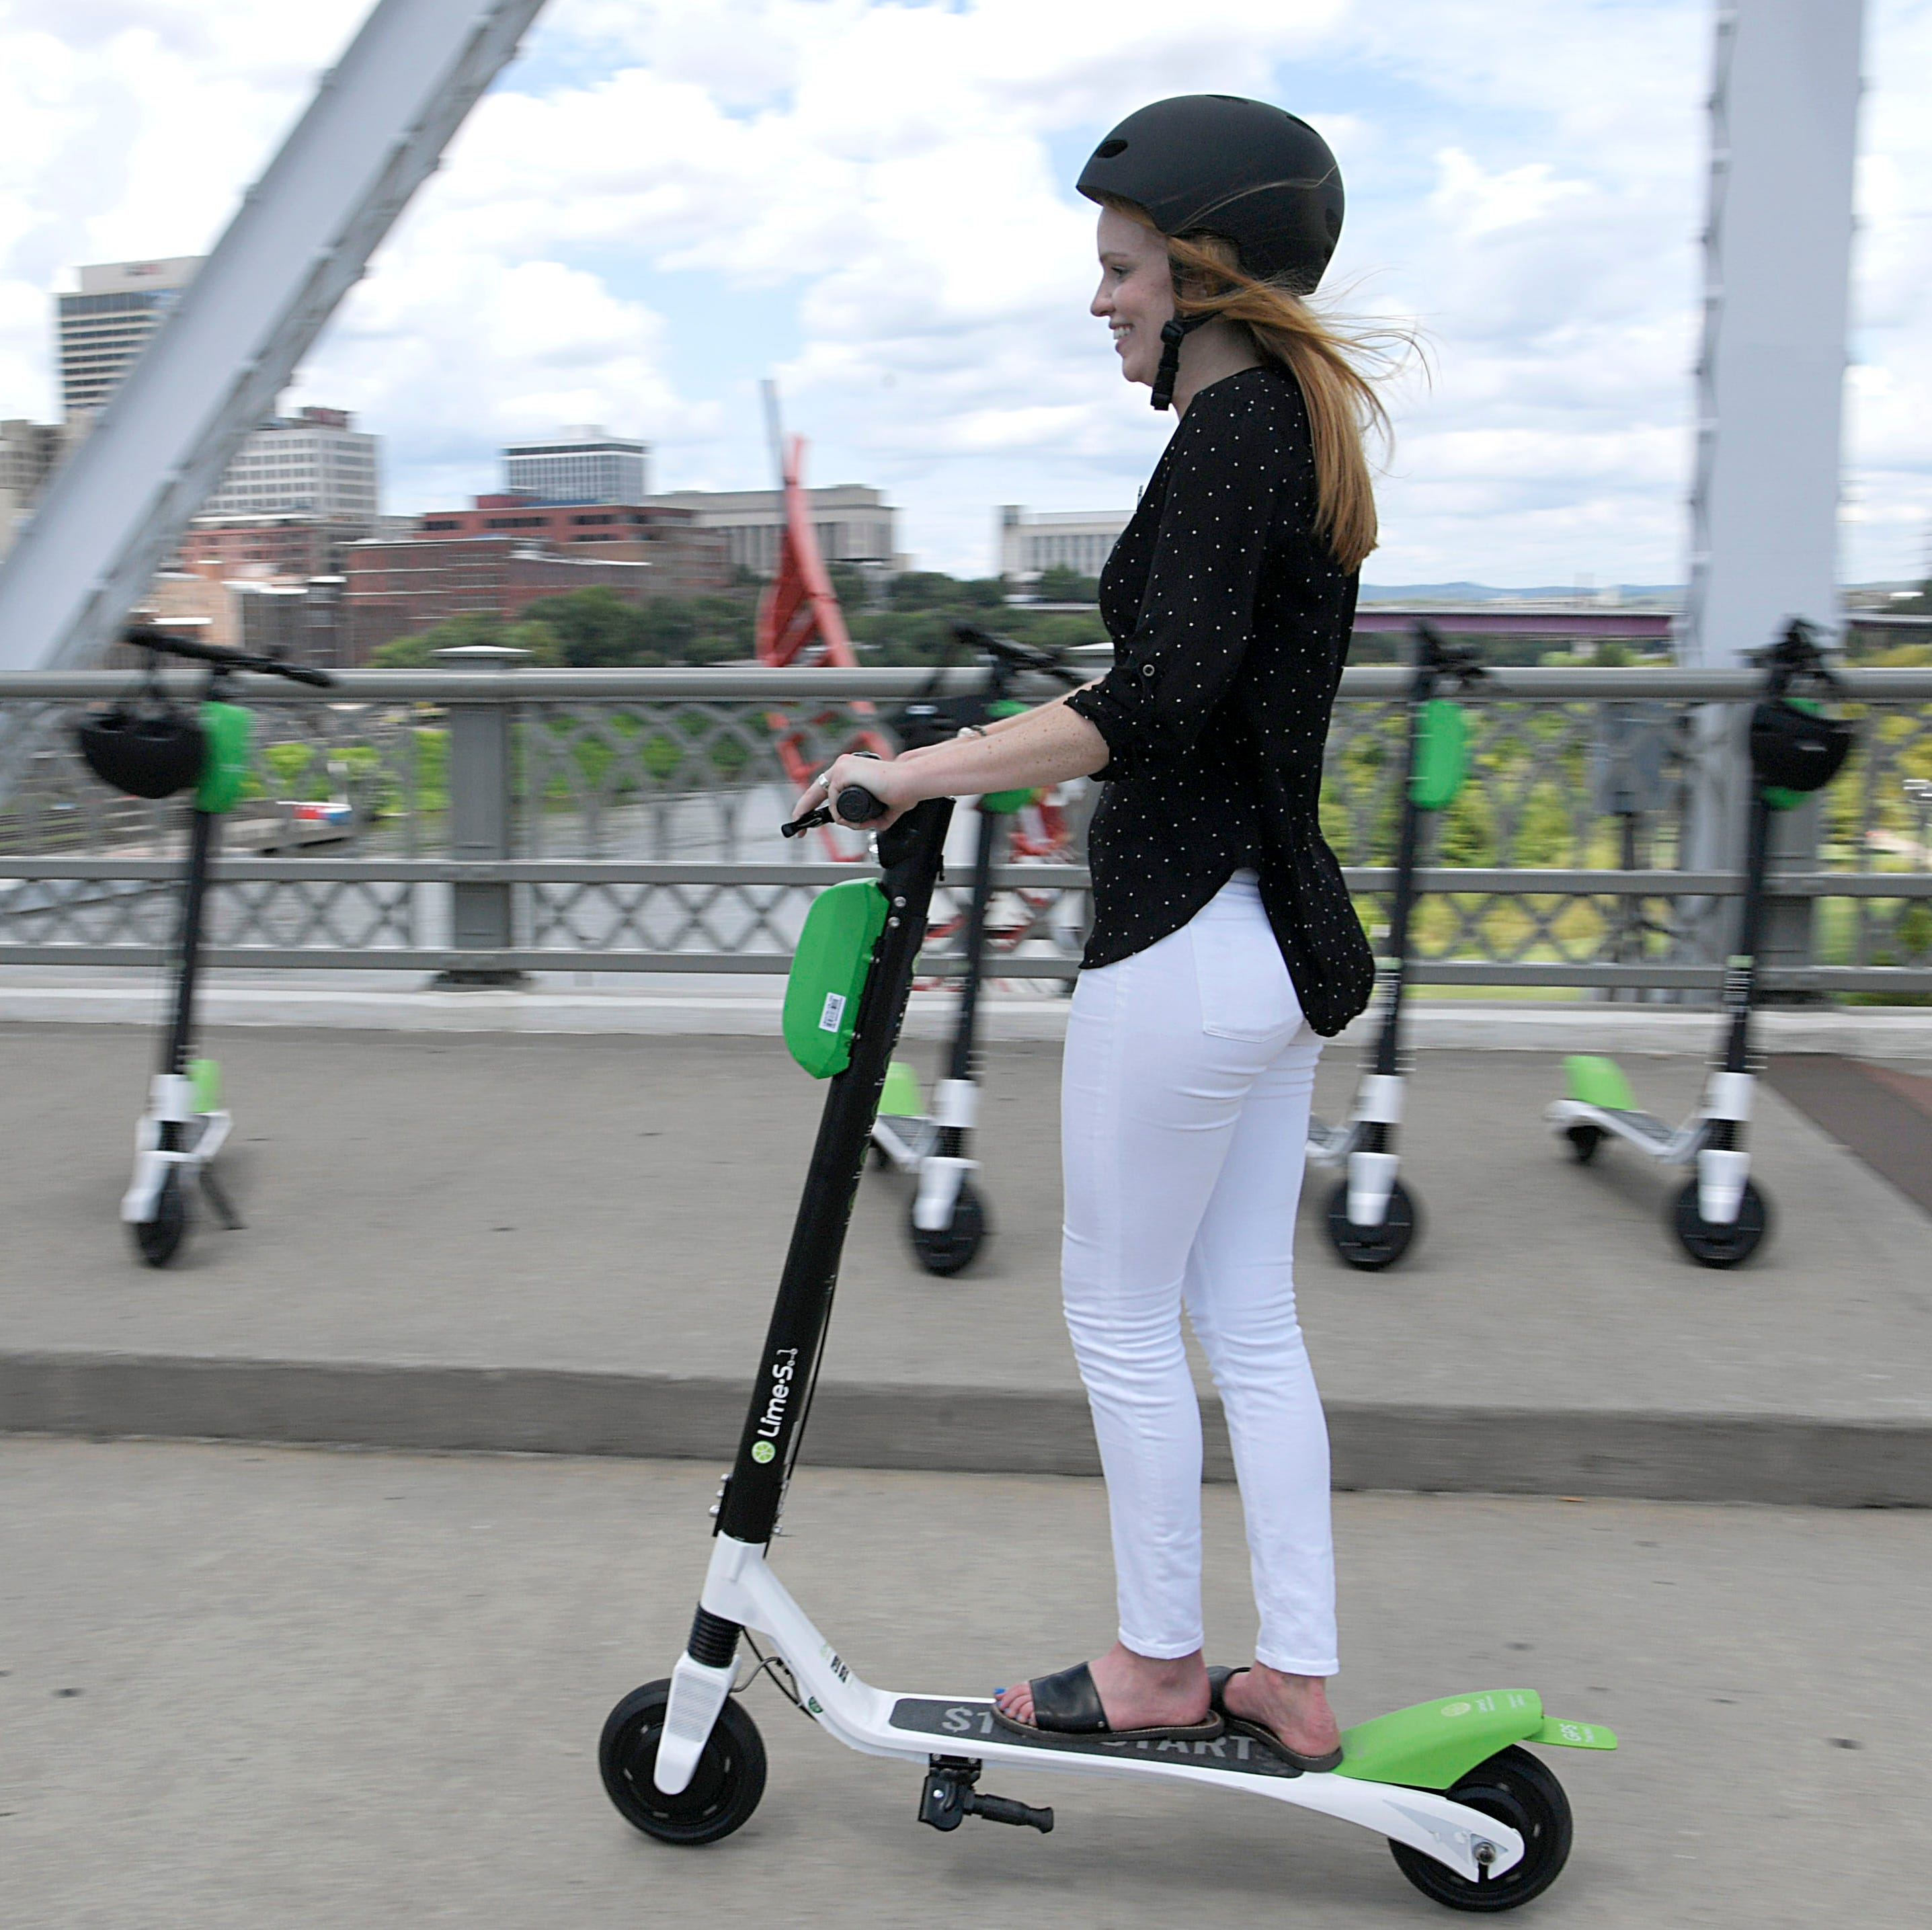 Electric scooter companies respond to Nashville mayor's possible ban